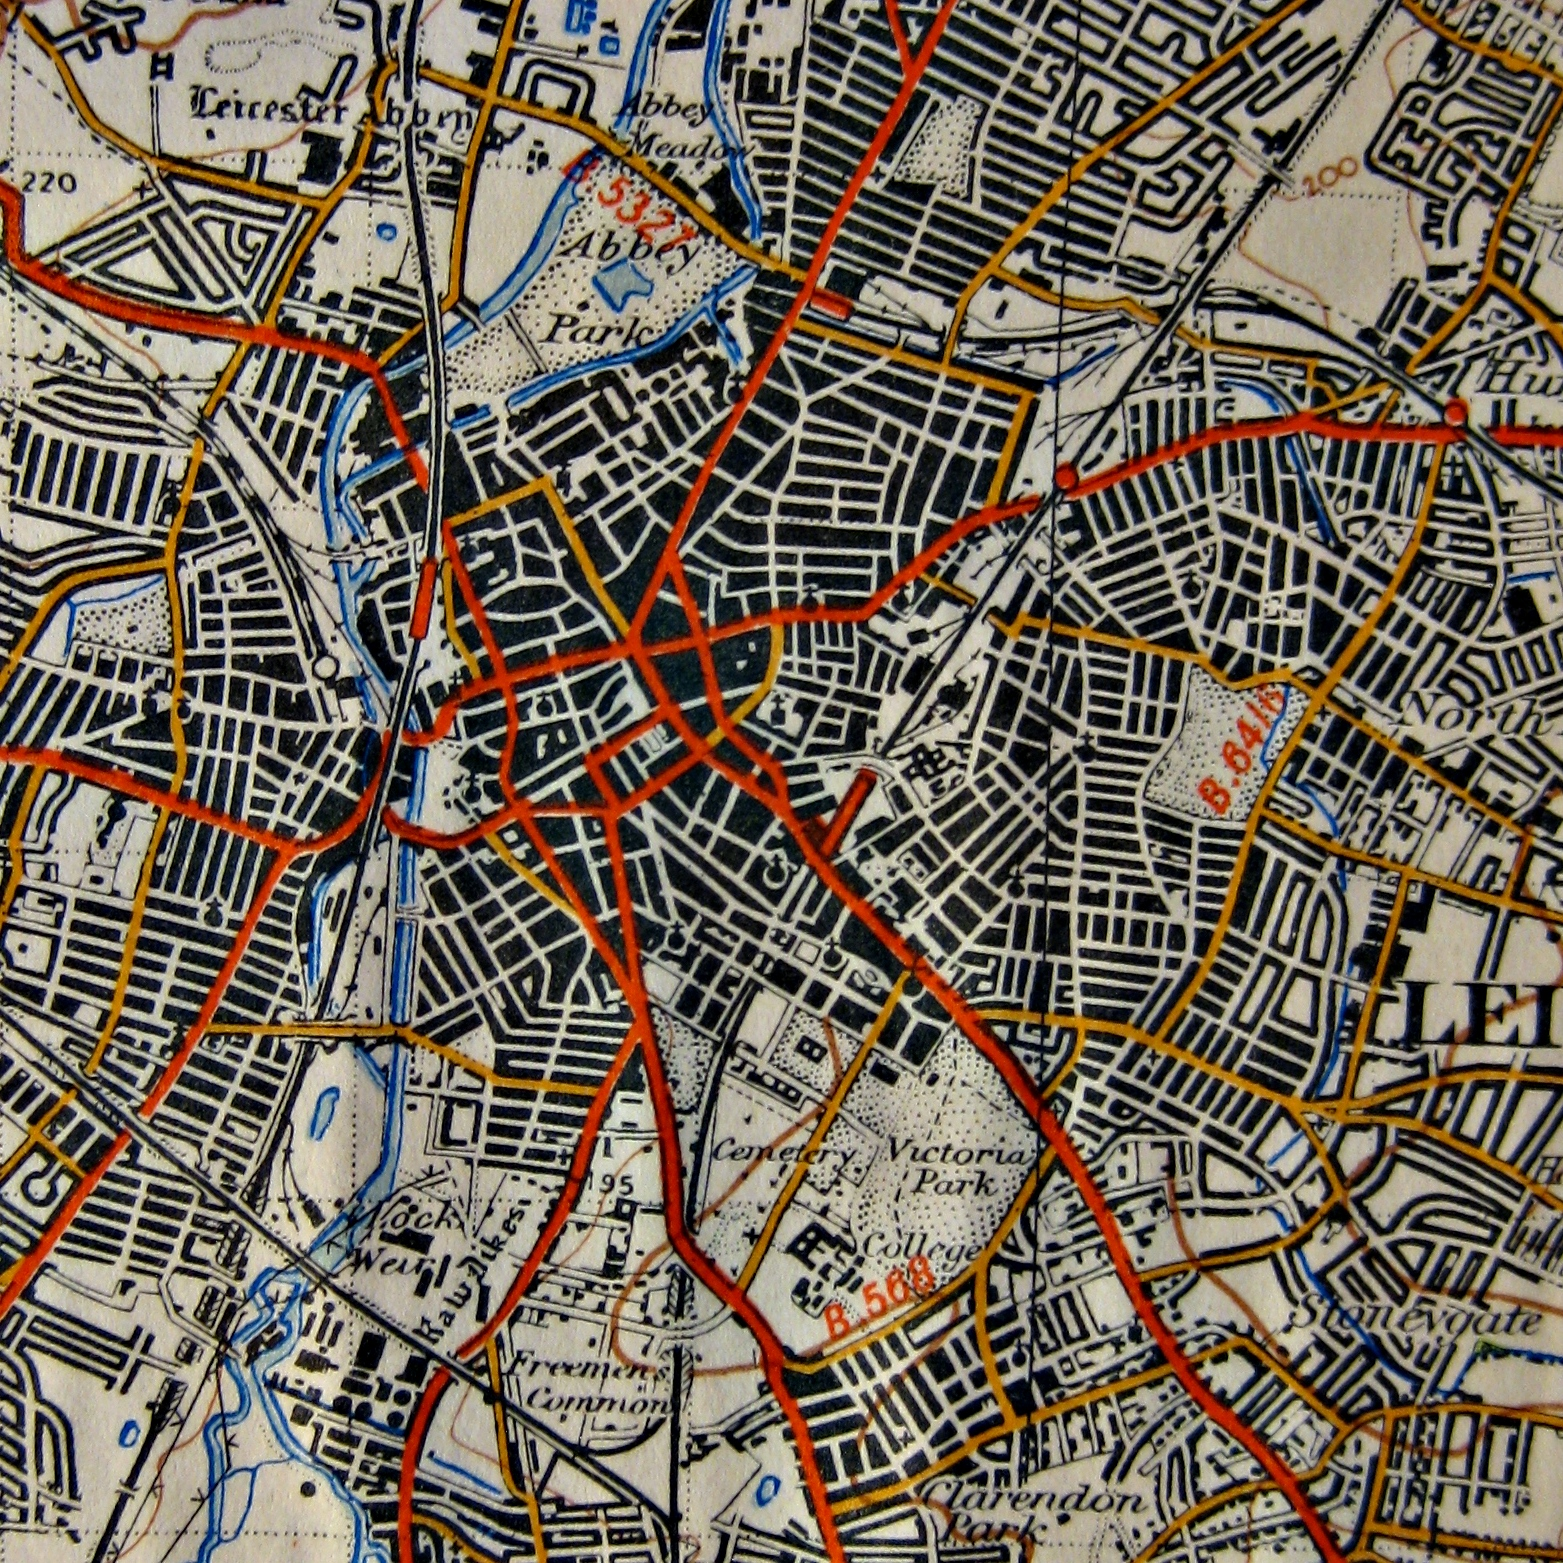 FileLeicester OS MapJPG Wikimedia Commons - Old os maps